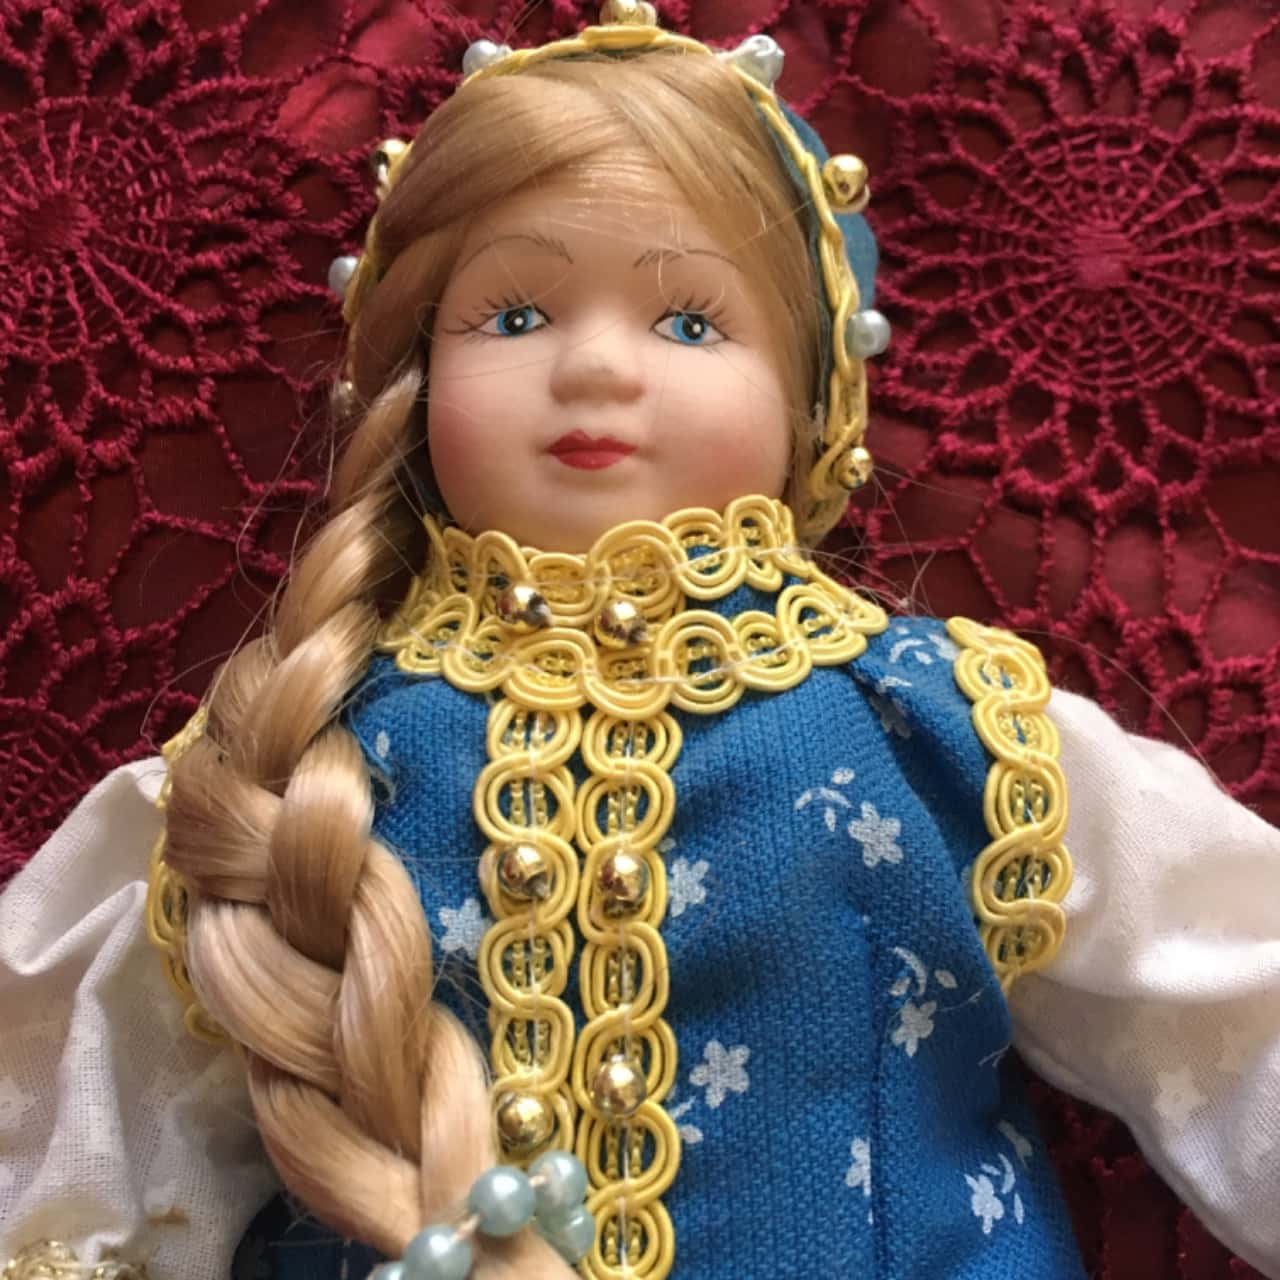 Porcelain Doll in Traditional Costume and Festive Dress from Russia